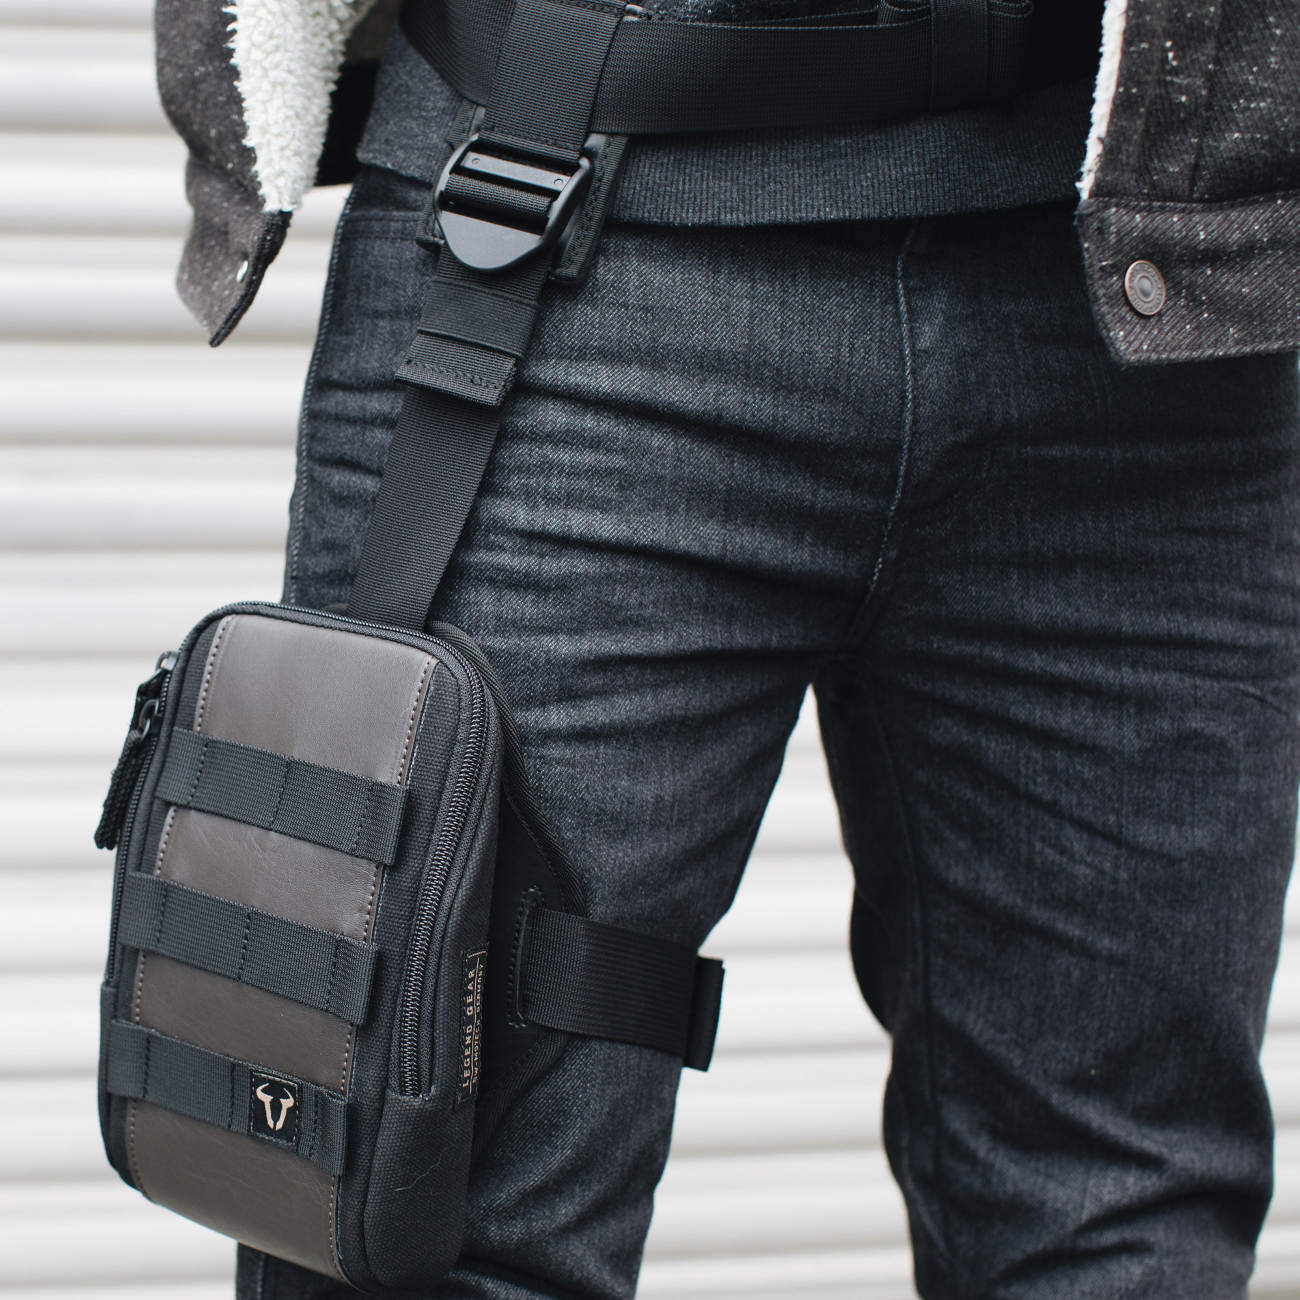 SW-Motech Legend Gear Leg Bag Being Worn